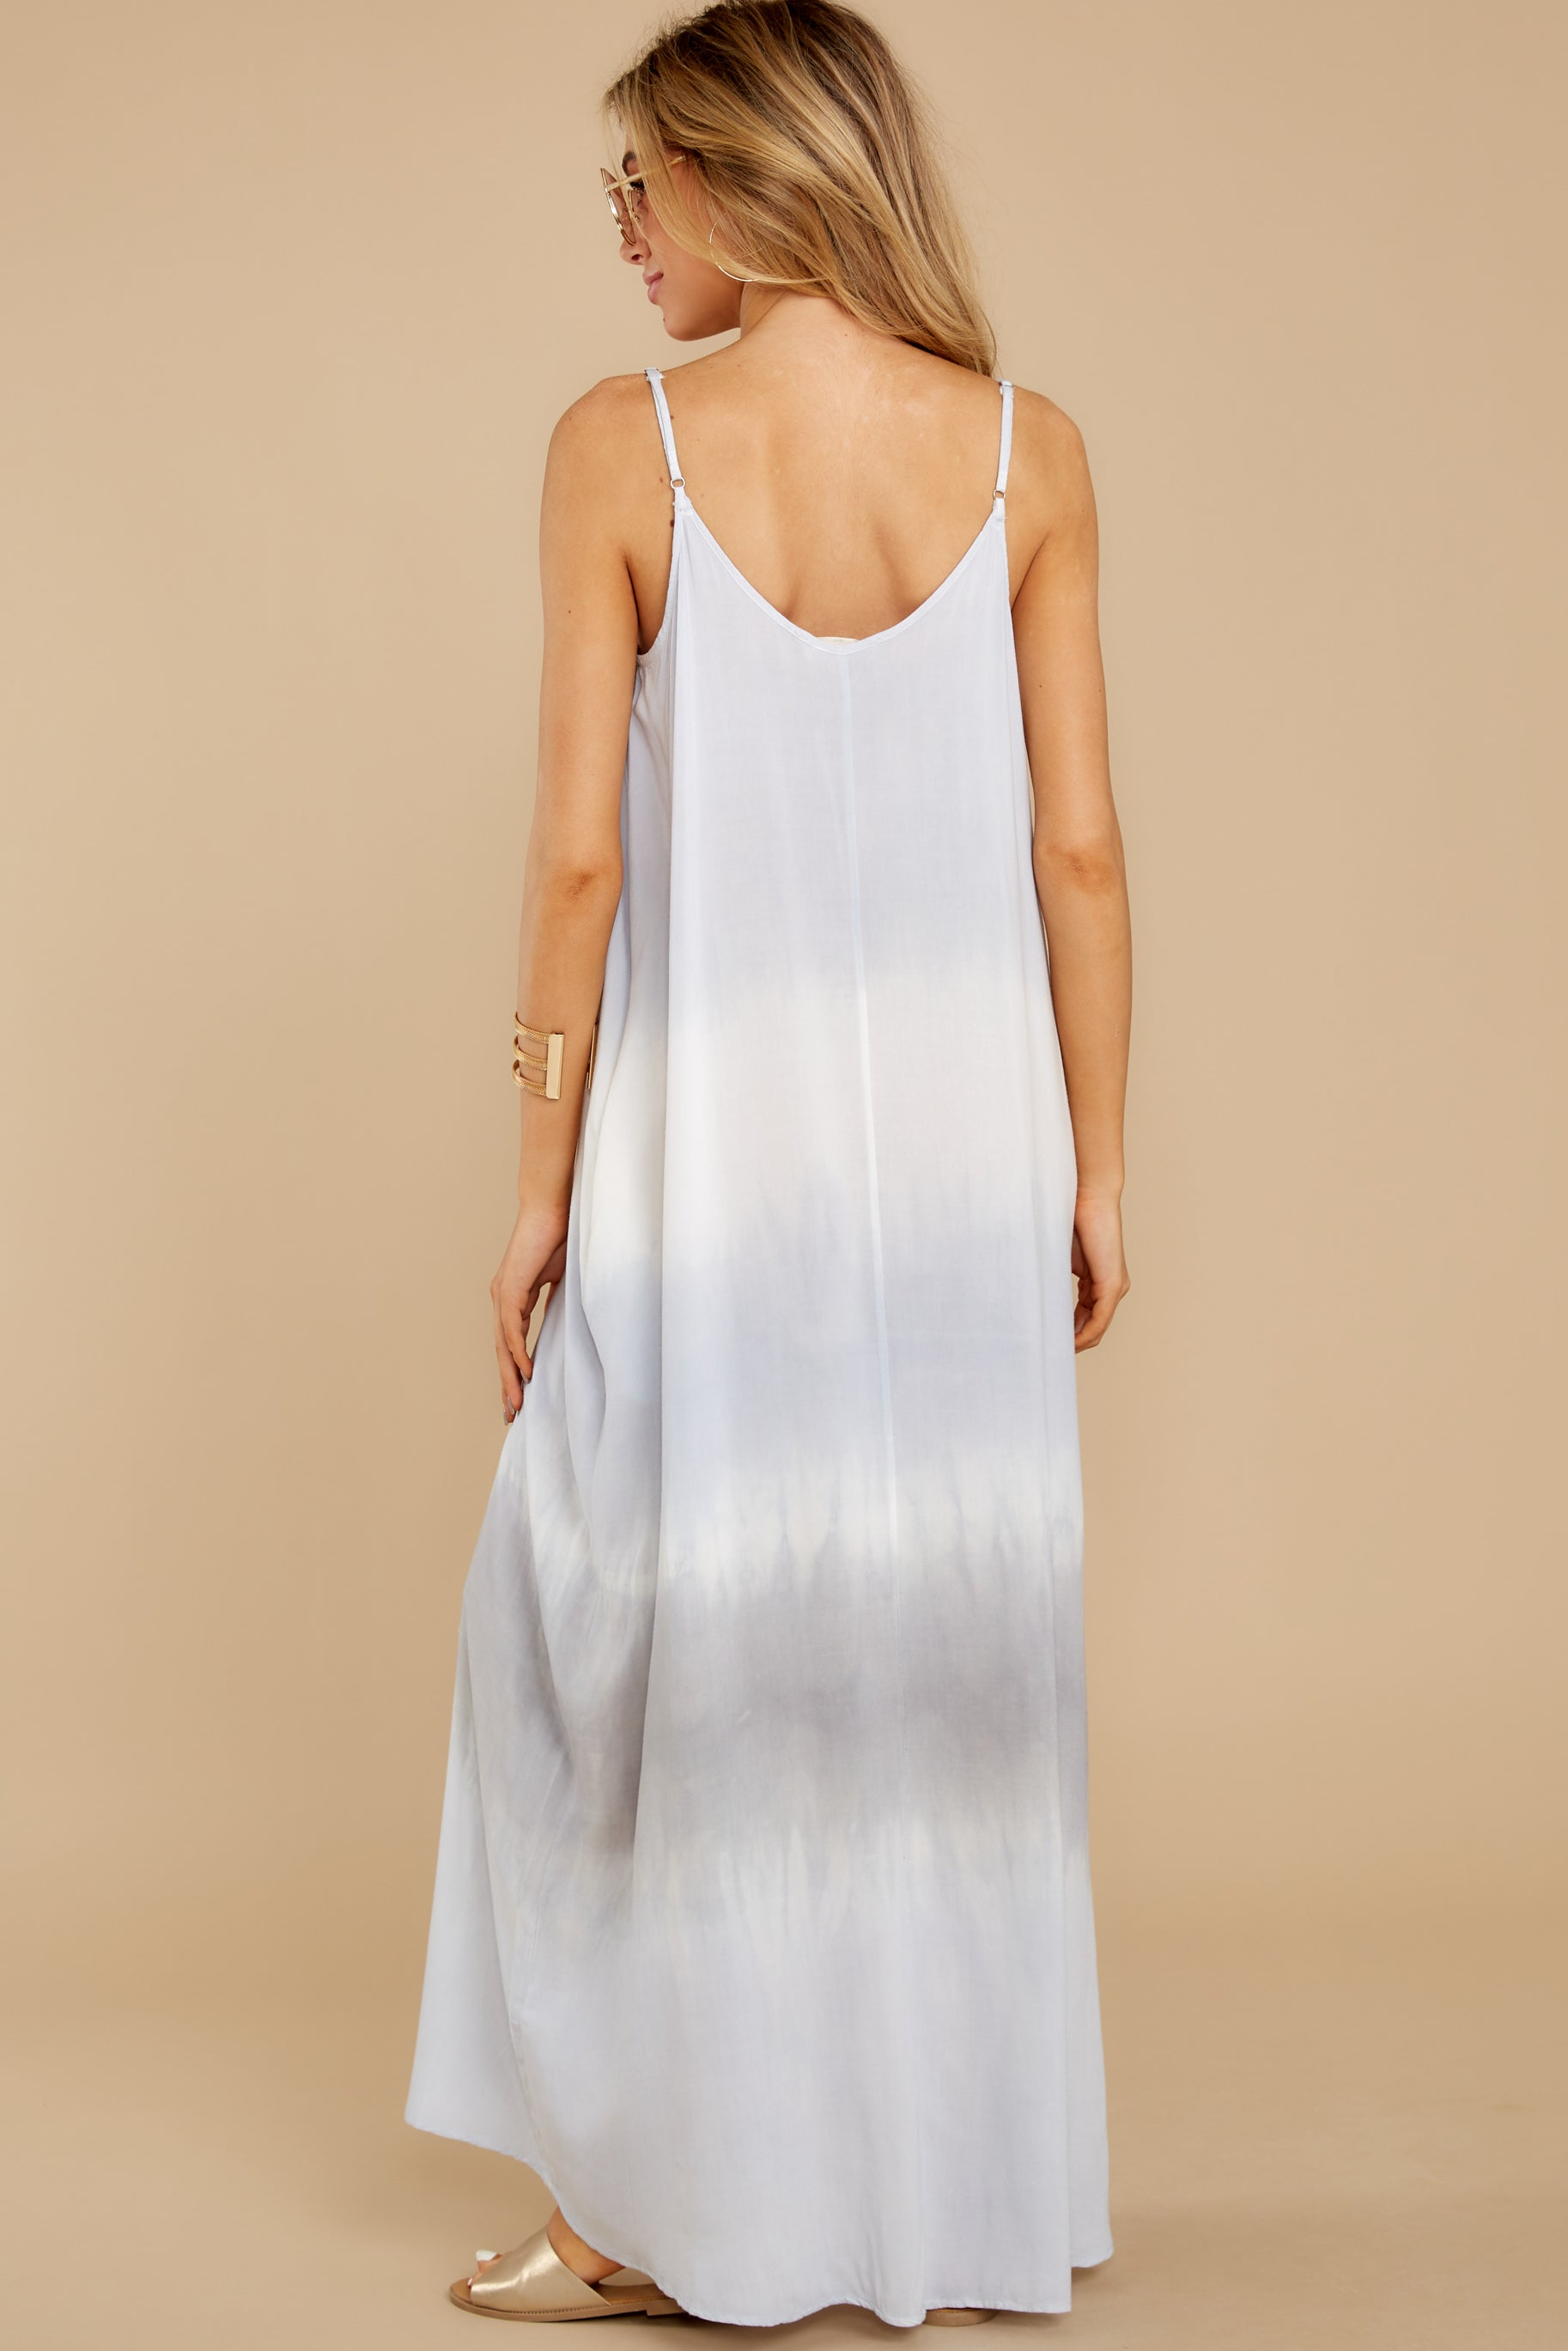 8 All My Love Light Blue Multi Maxi Dress at reddress.com